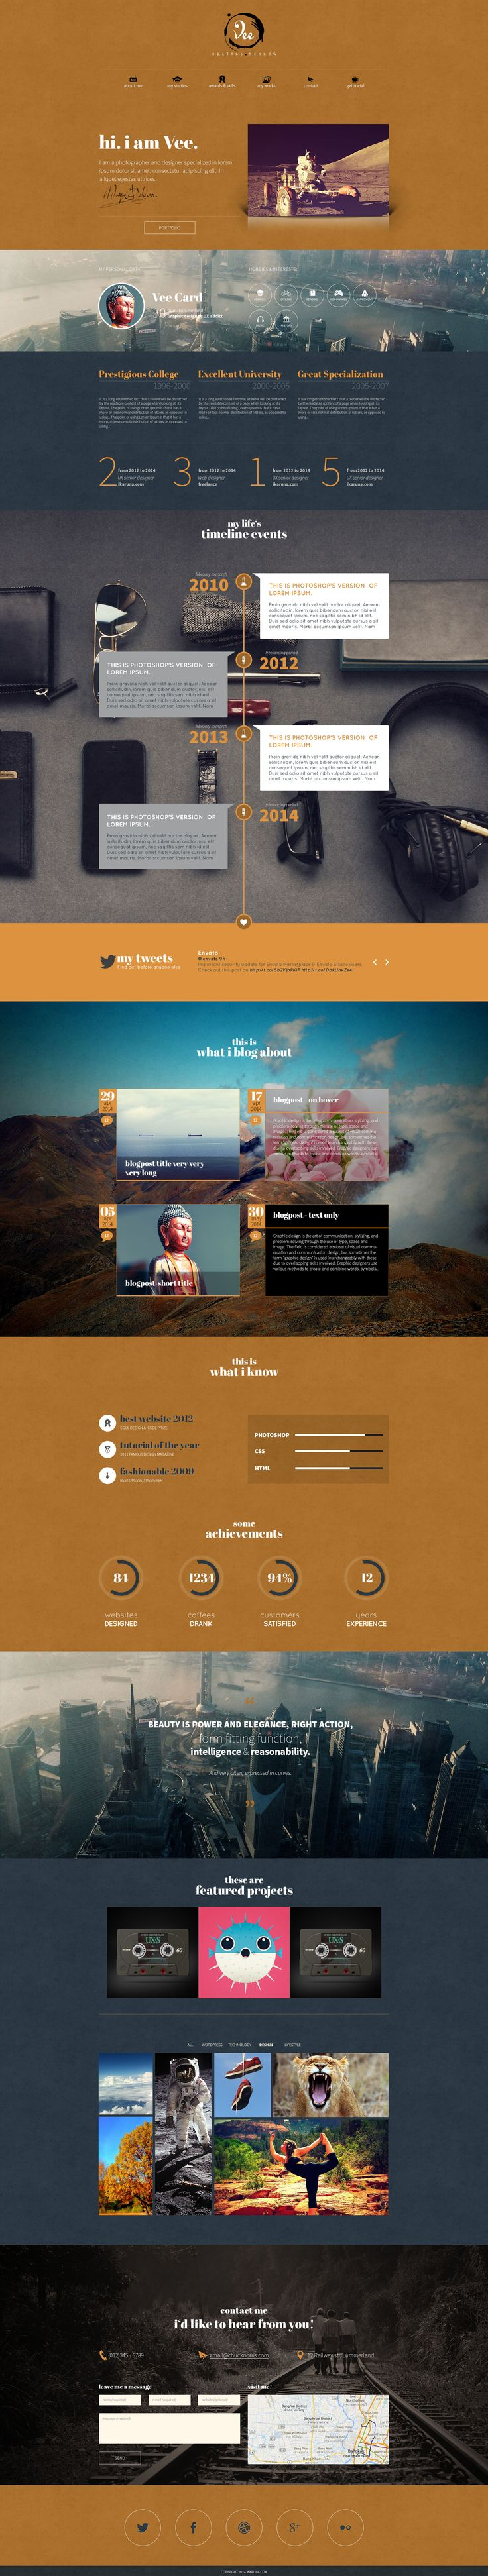 VeeCard – Clean Retro vCard WordPress Theme #design